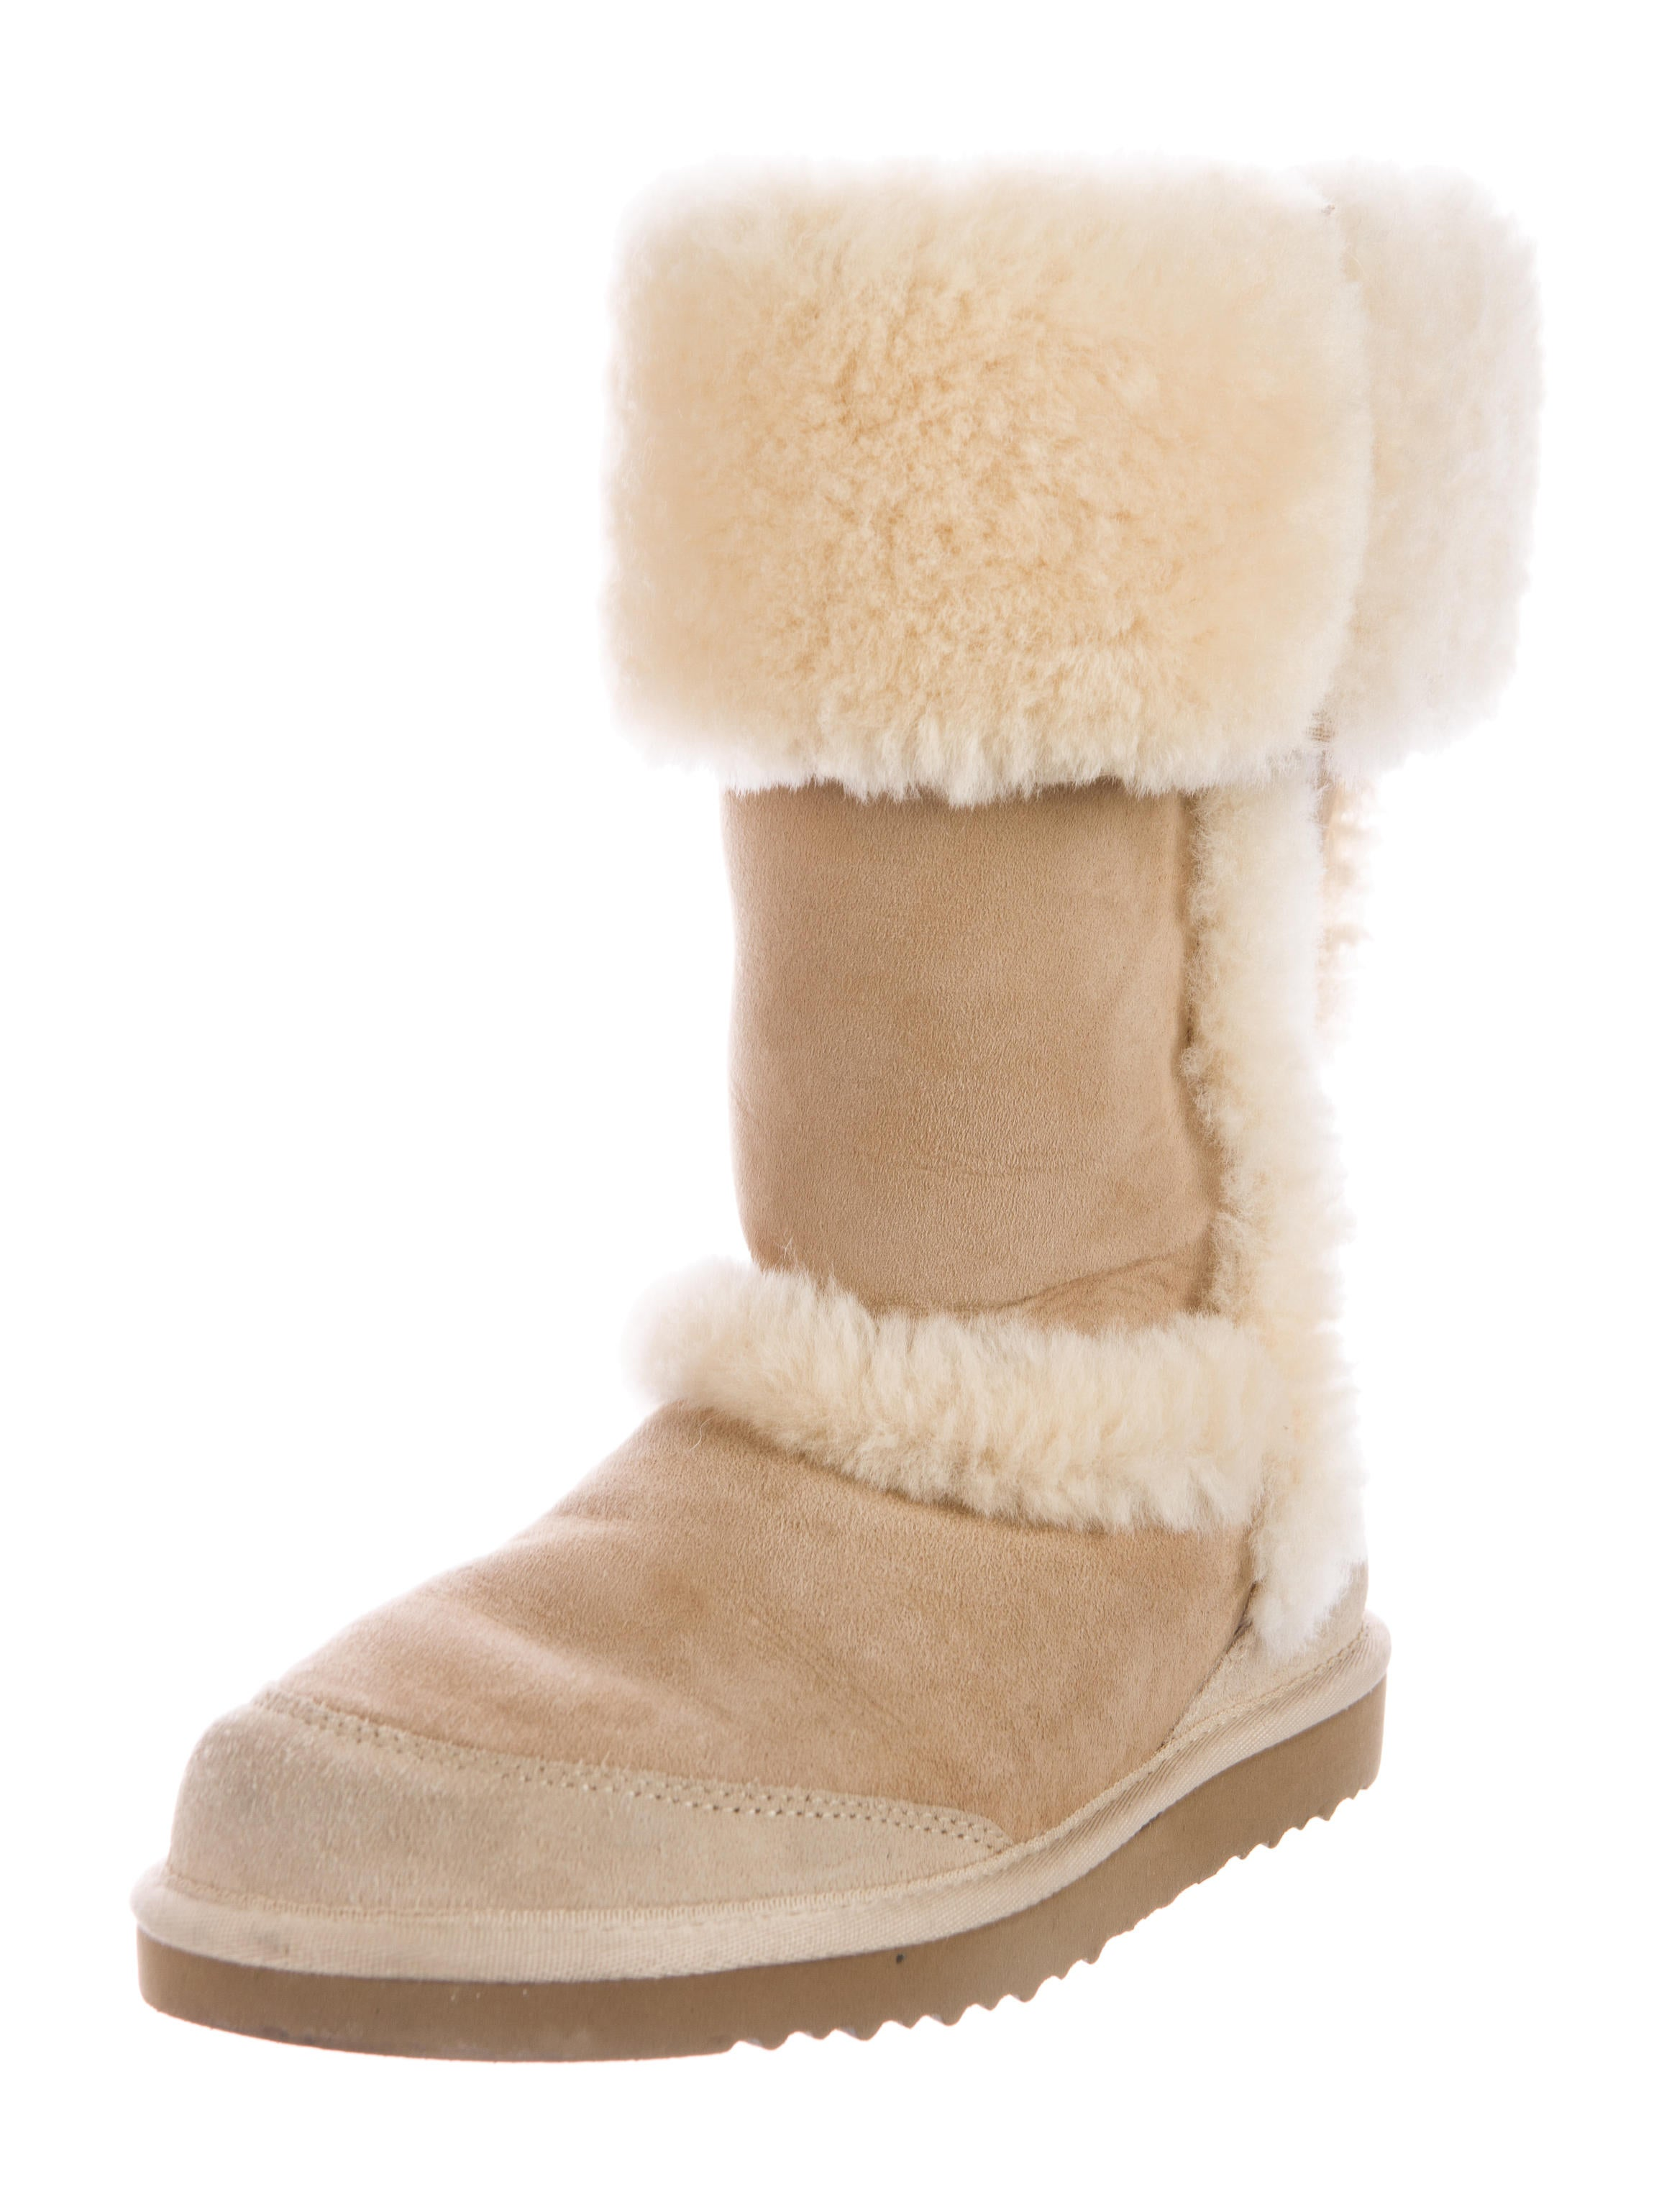 ugg australia suede fur trimmed boots shoes wuugg22273